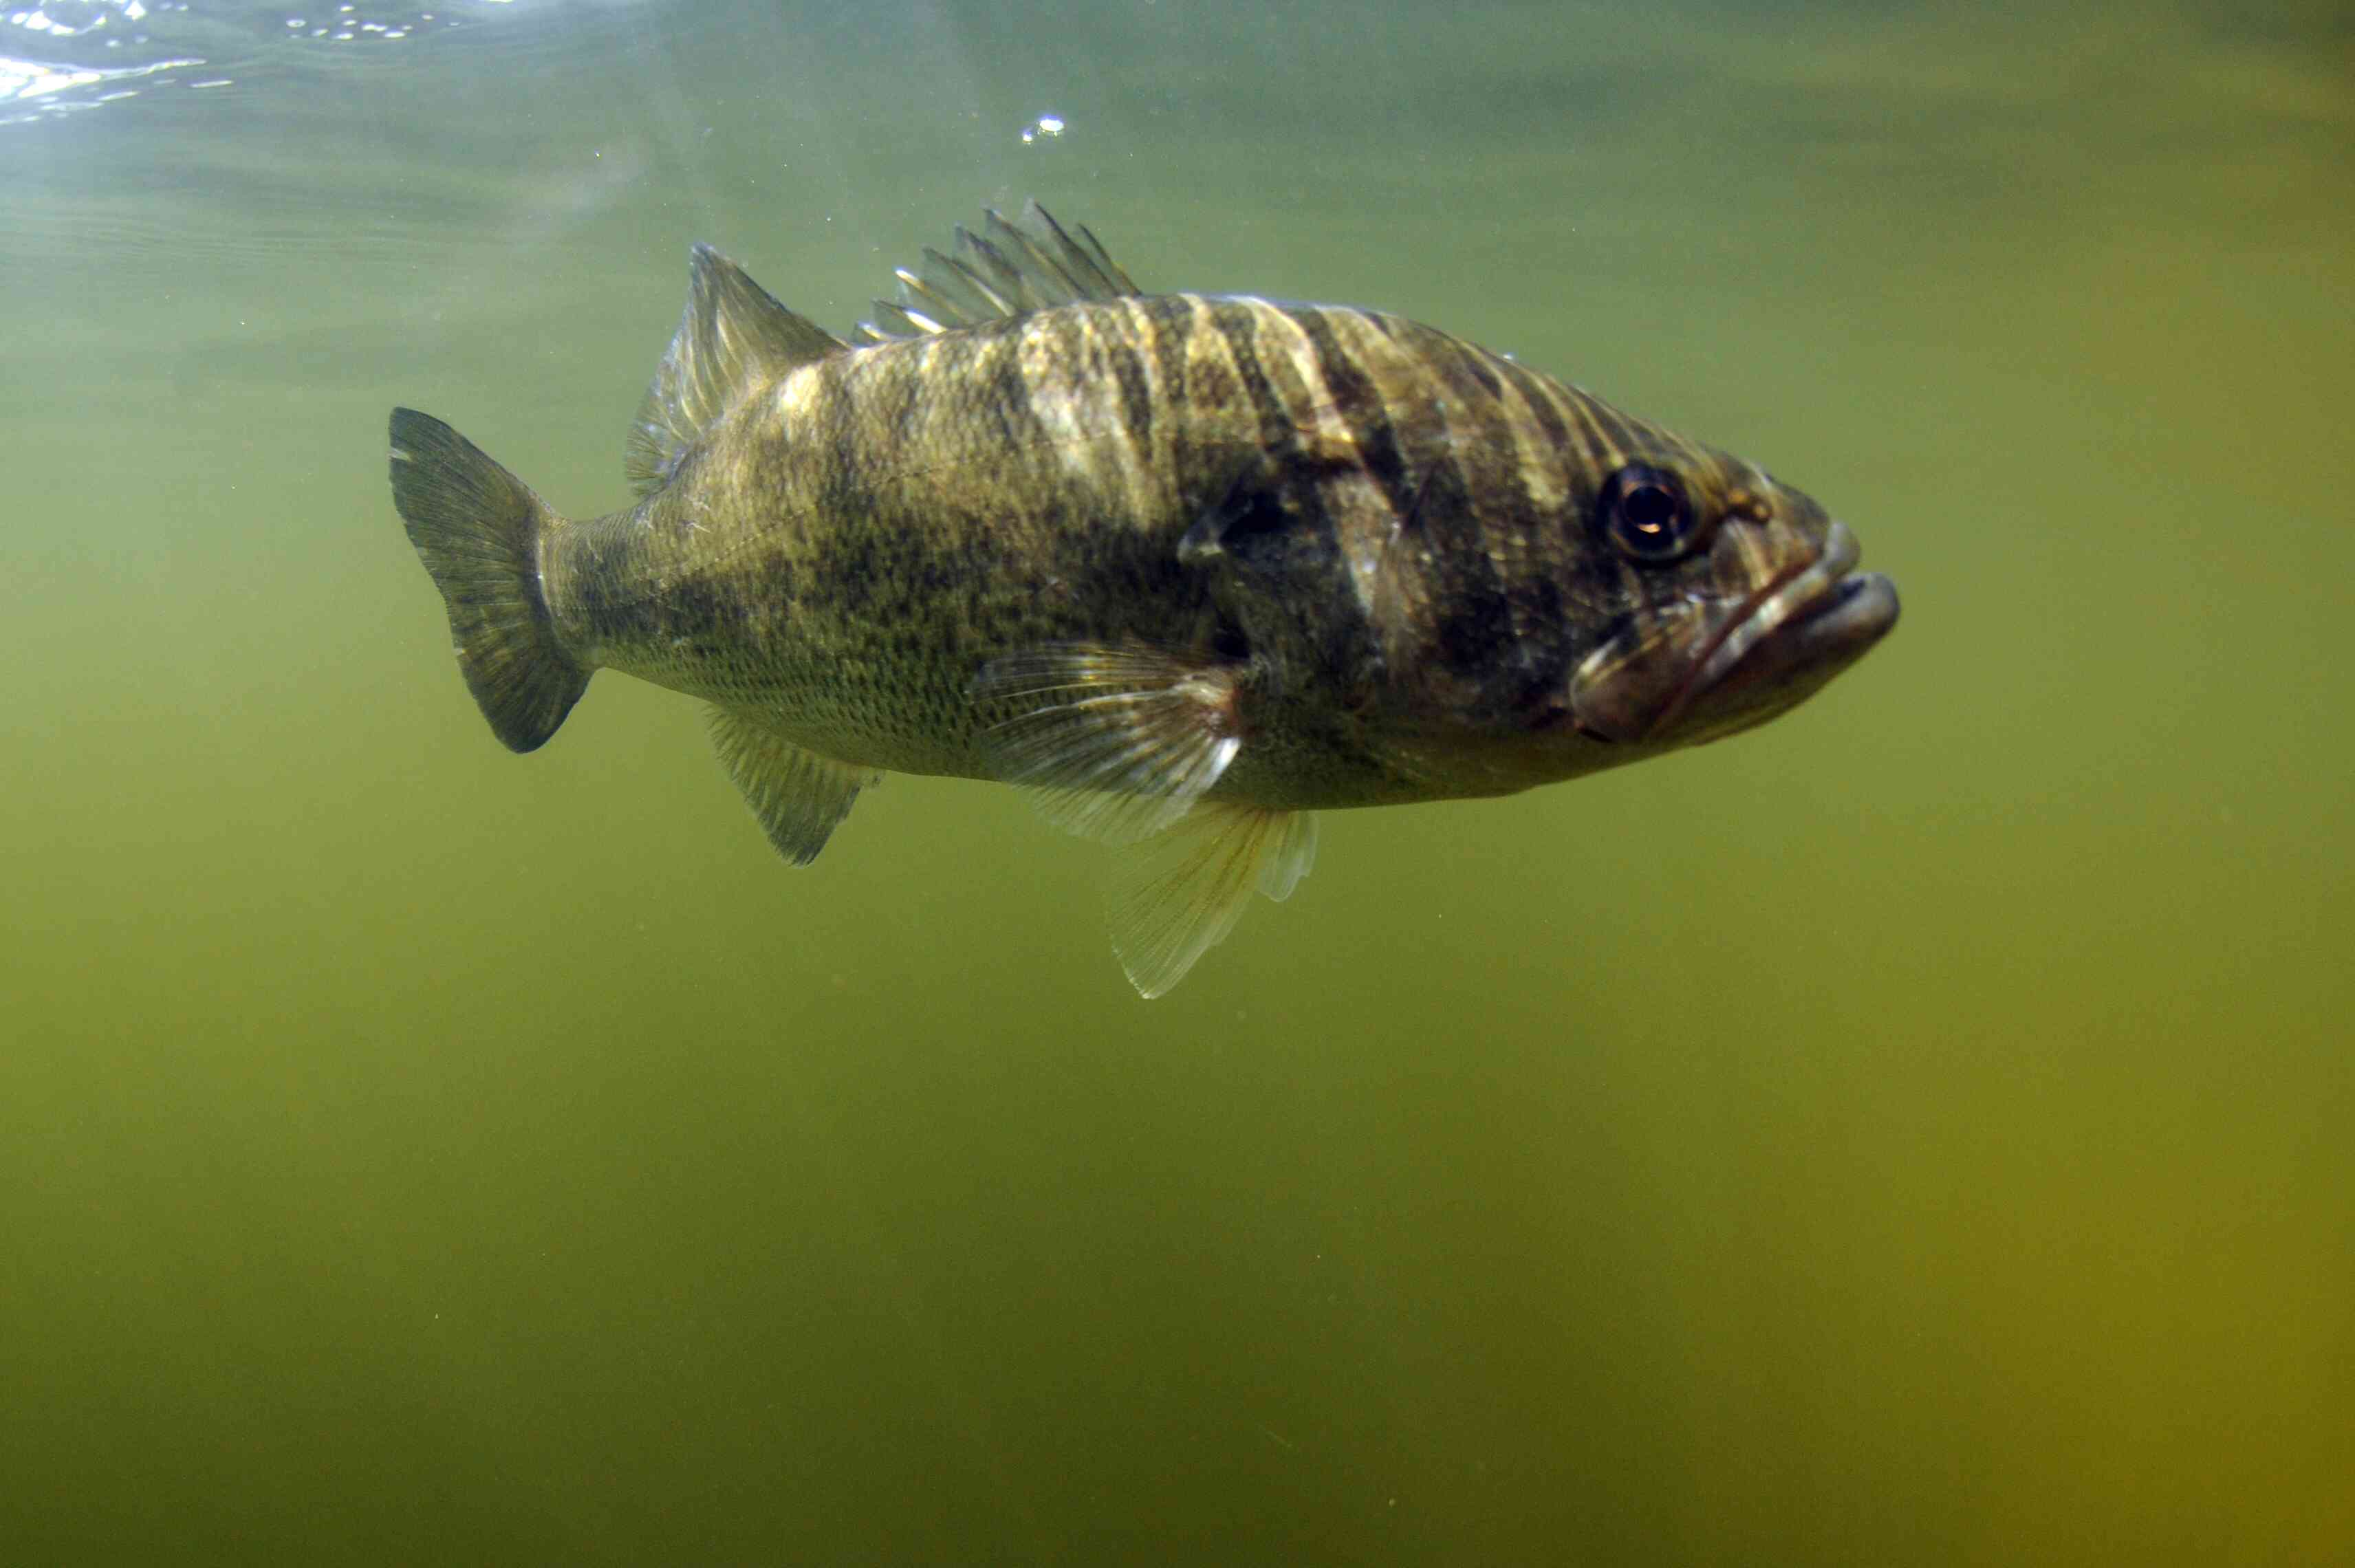 A largemouth bass swimming in its natural freshwater habitat